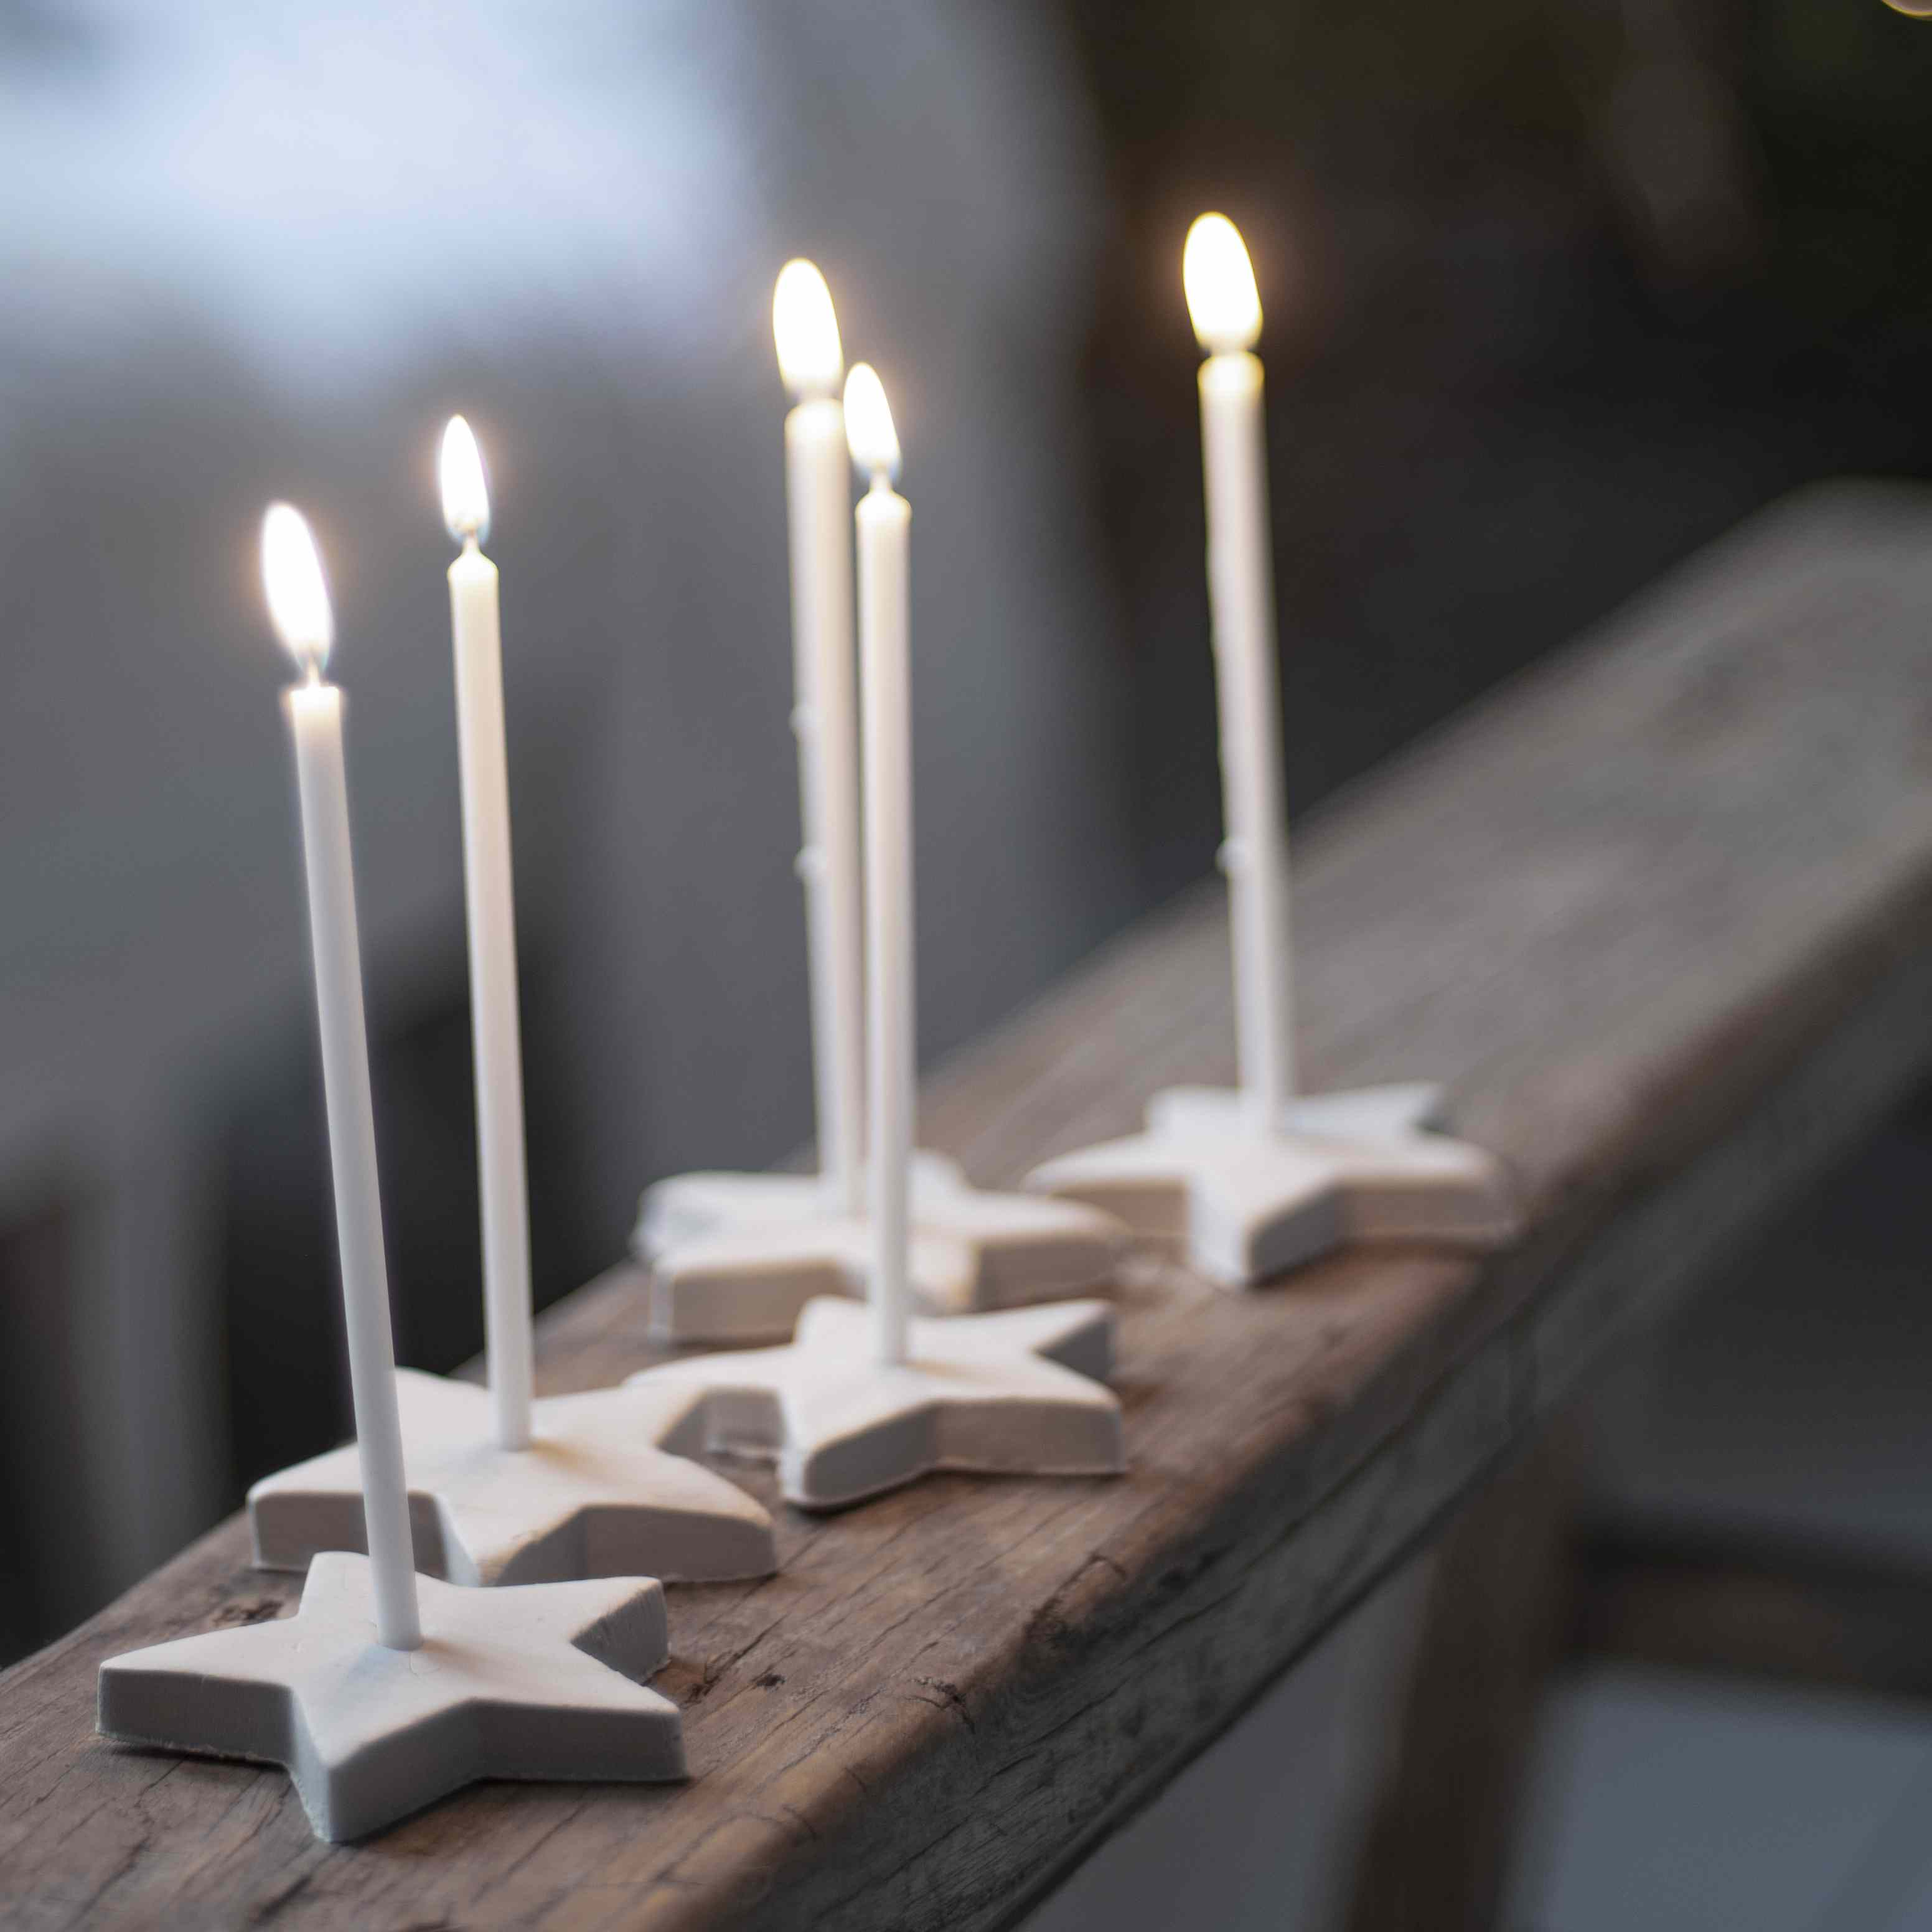 Star candles.